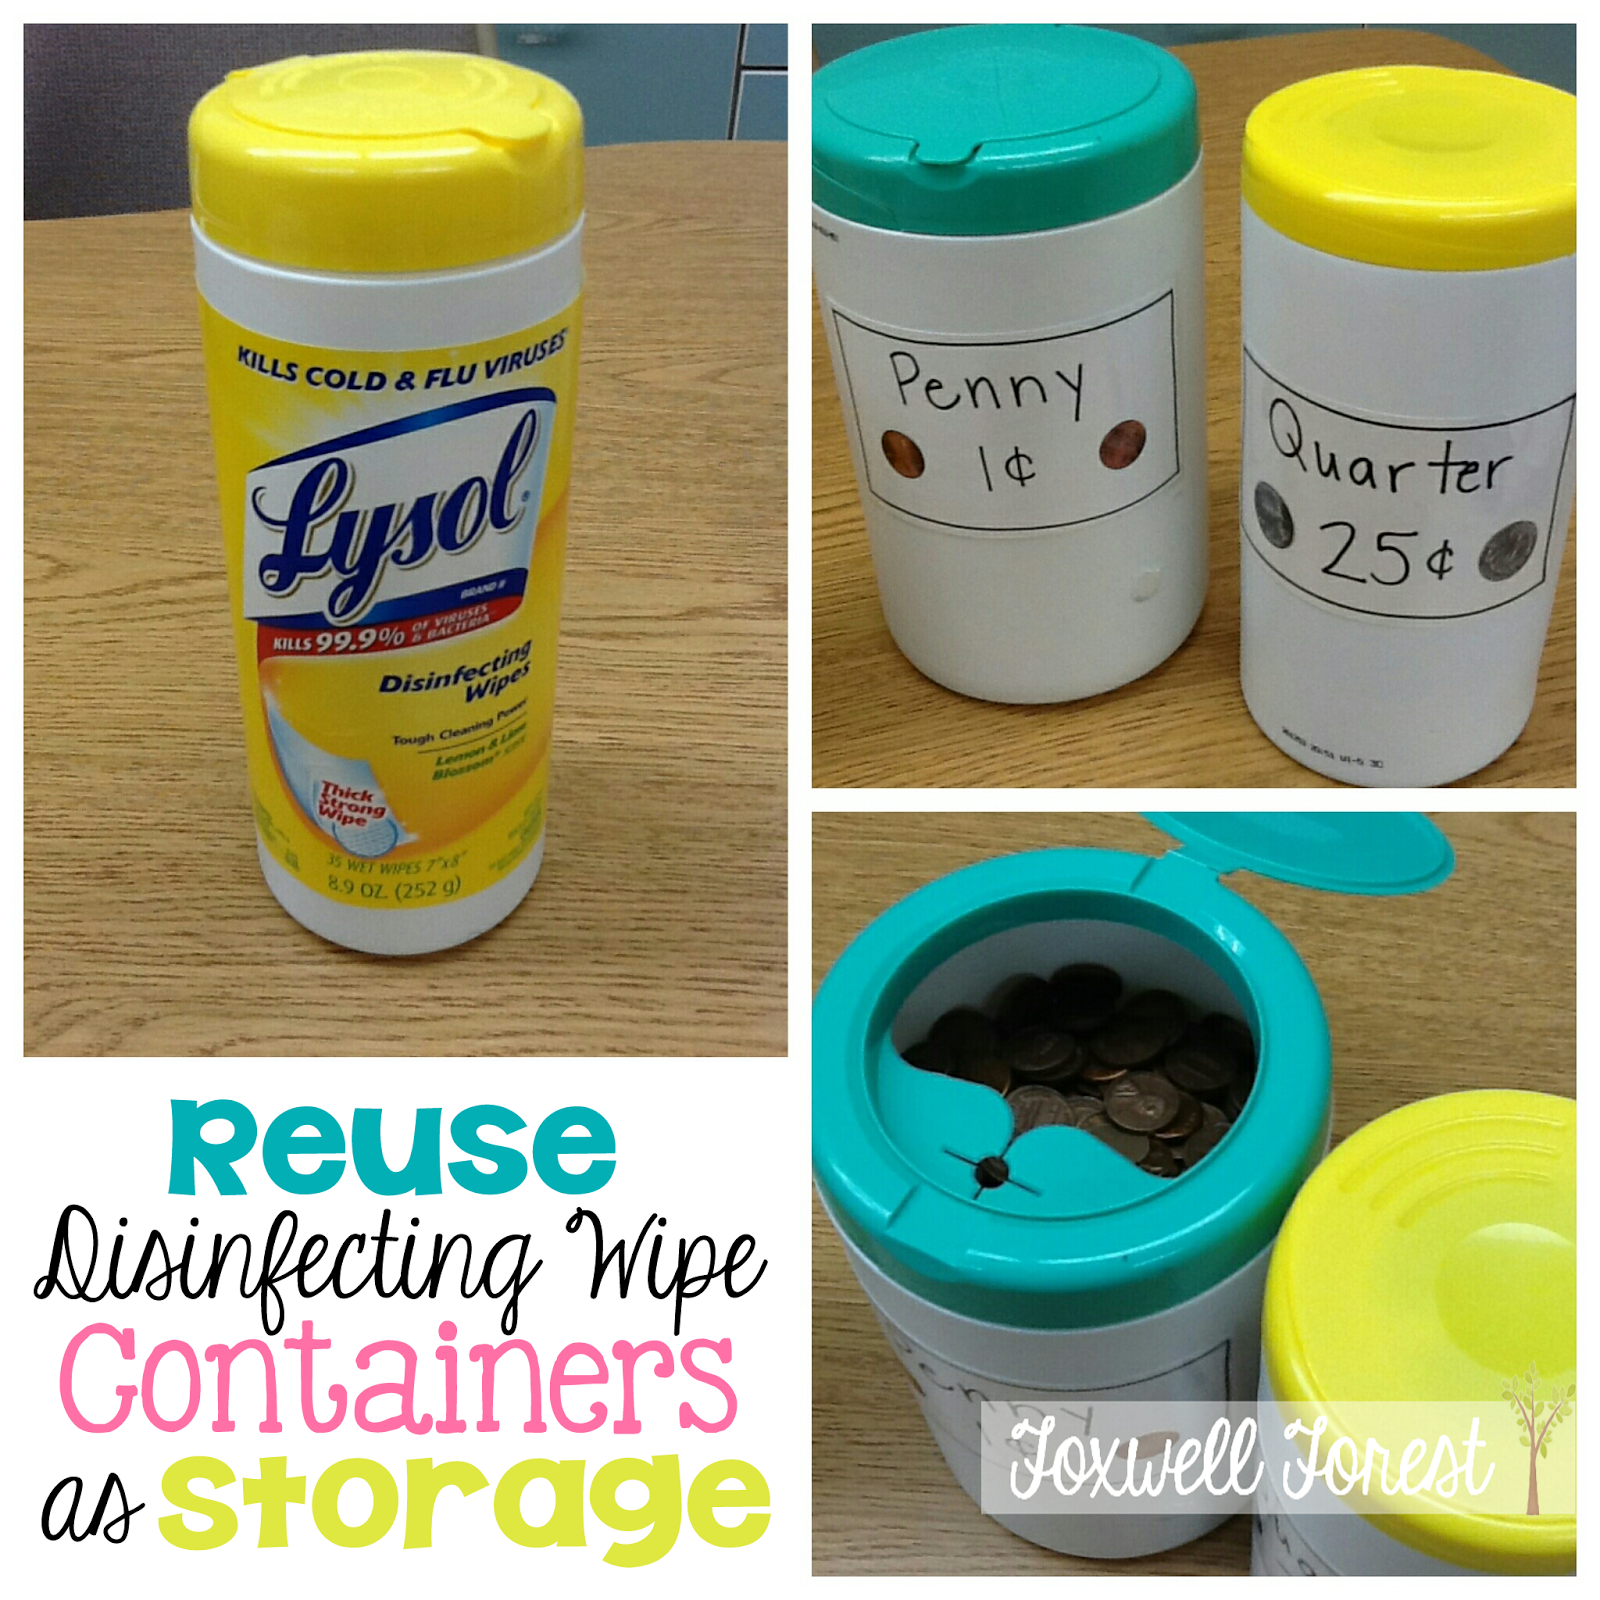 Reuse Disinfecting Wipe Containers For Storage Foxwell Forest